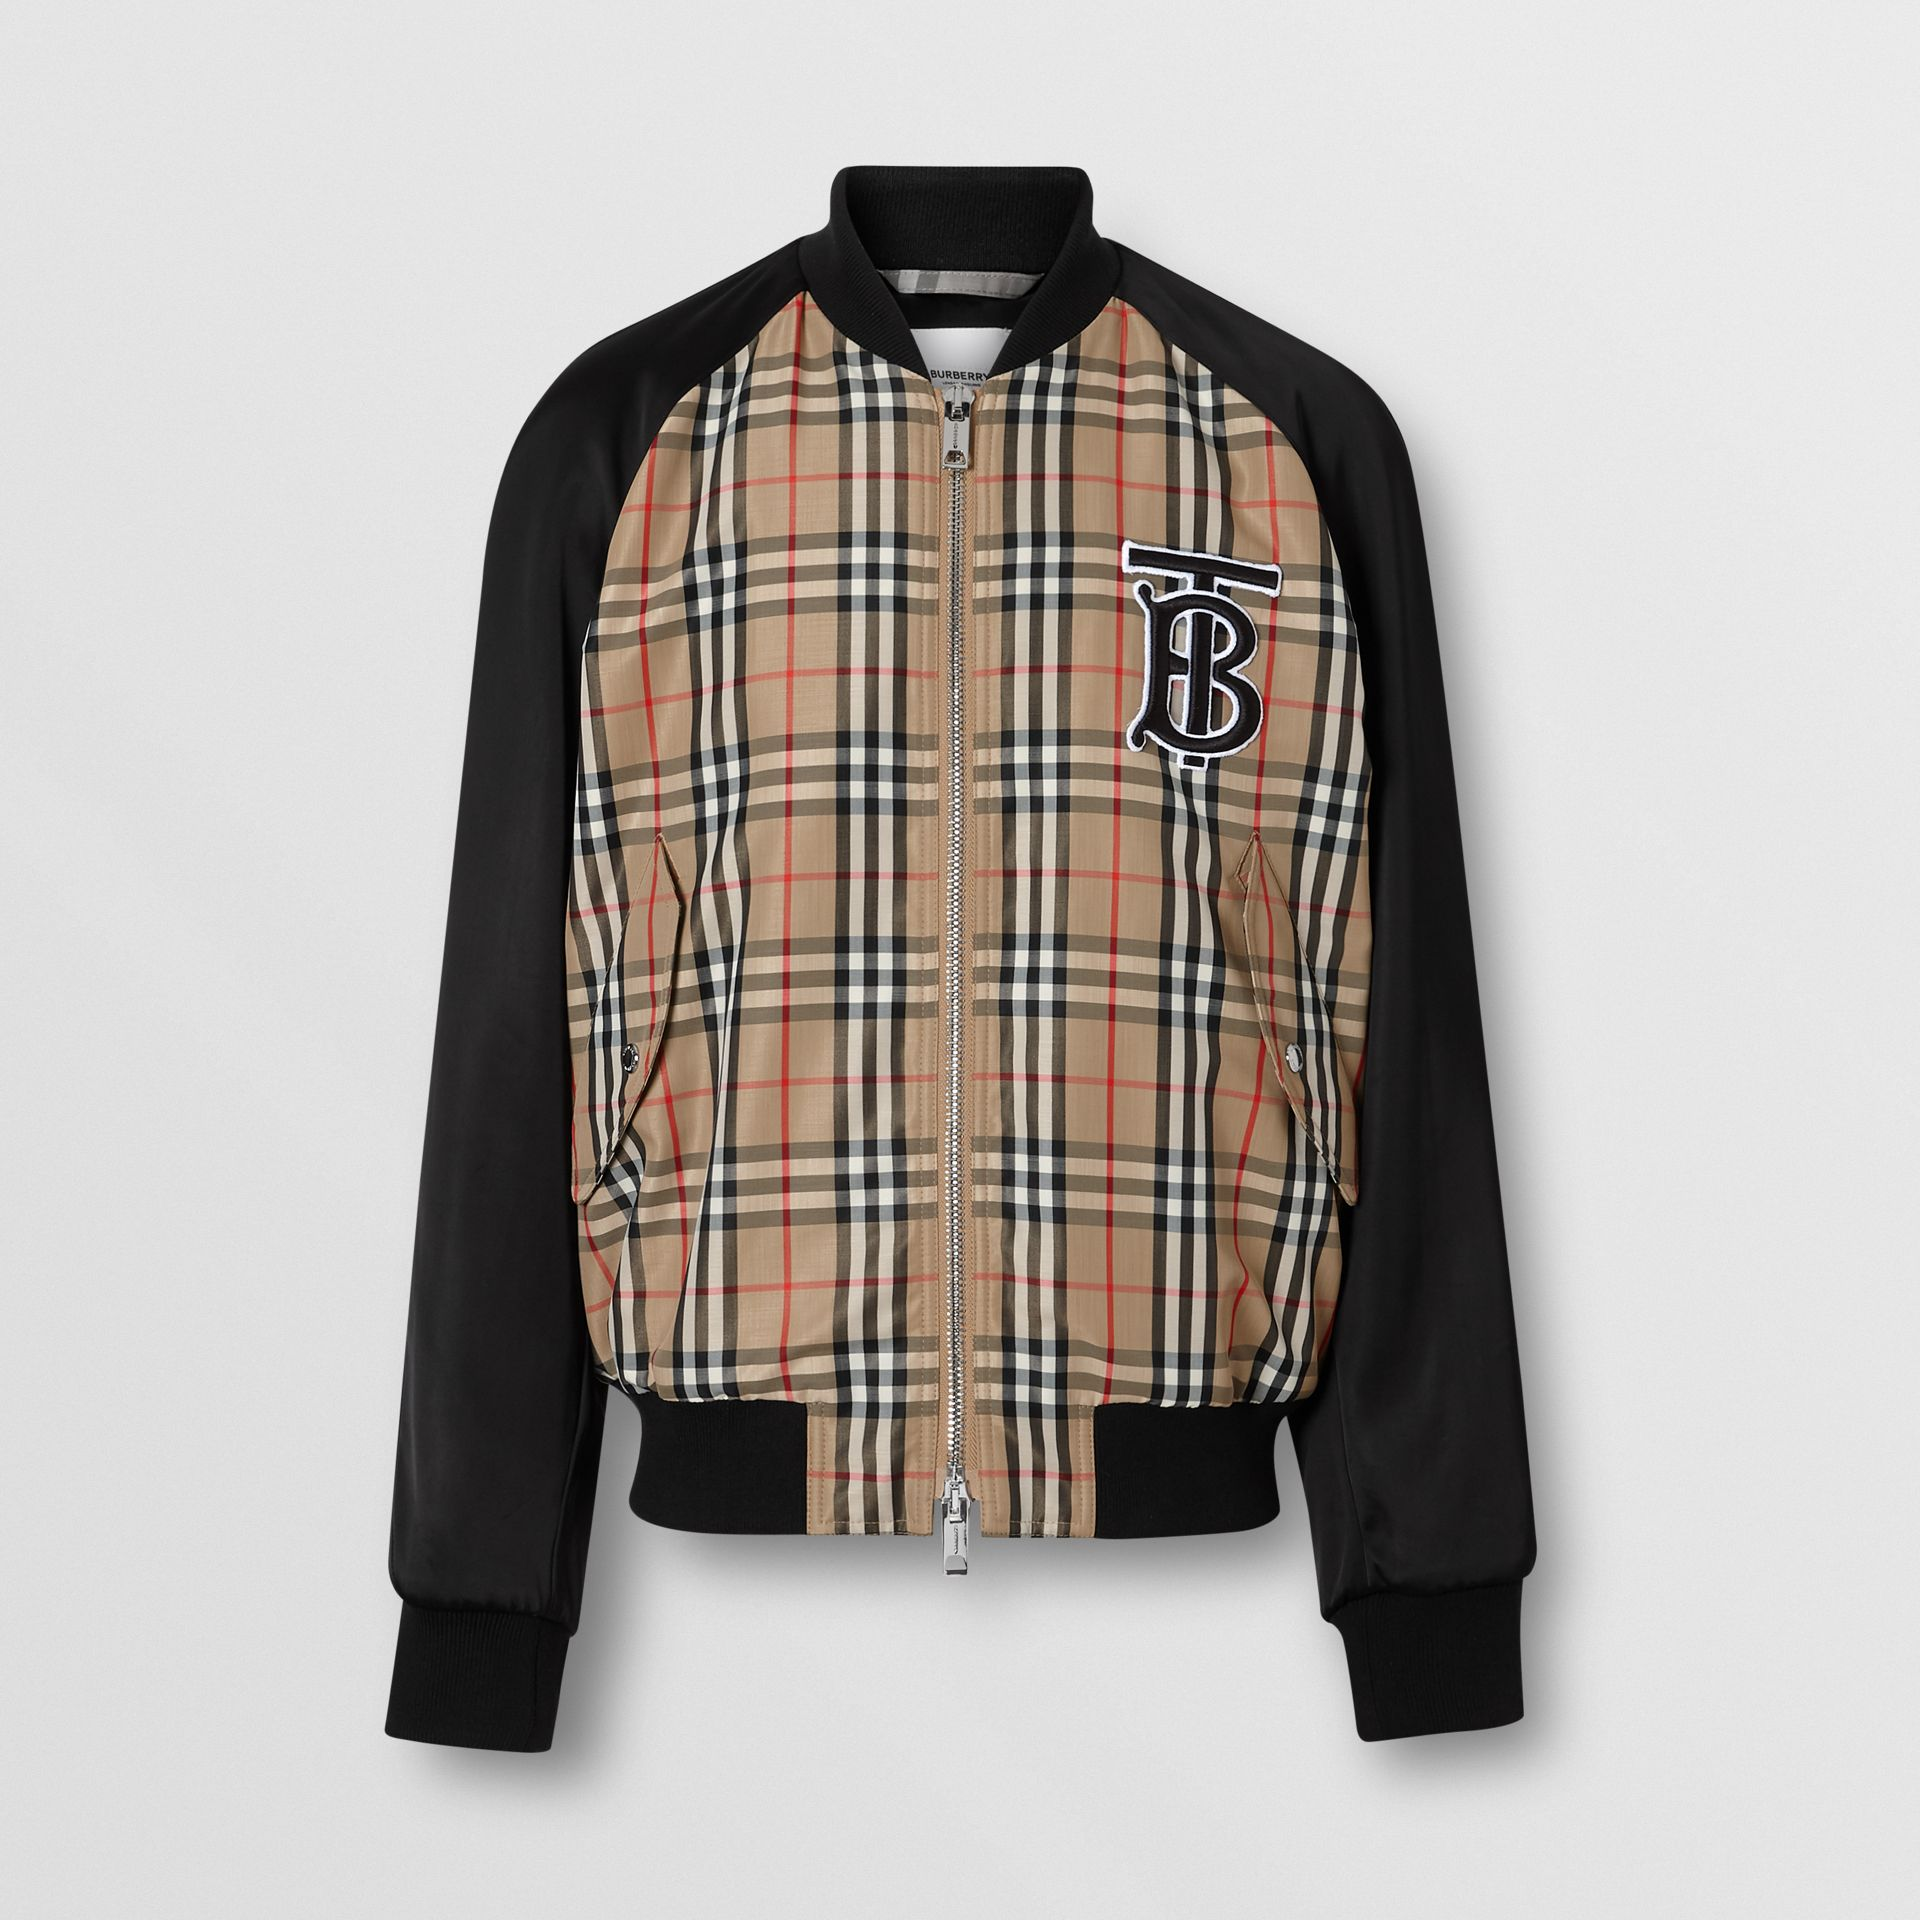 Monogram Motif Vintage Check Nylon Bomber Jacket in Archive Beige - Men | Burberry - gallery image 3